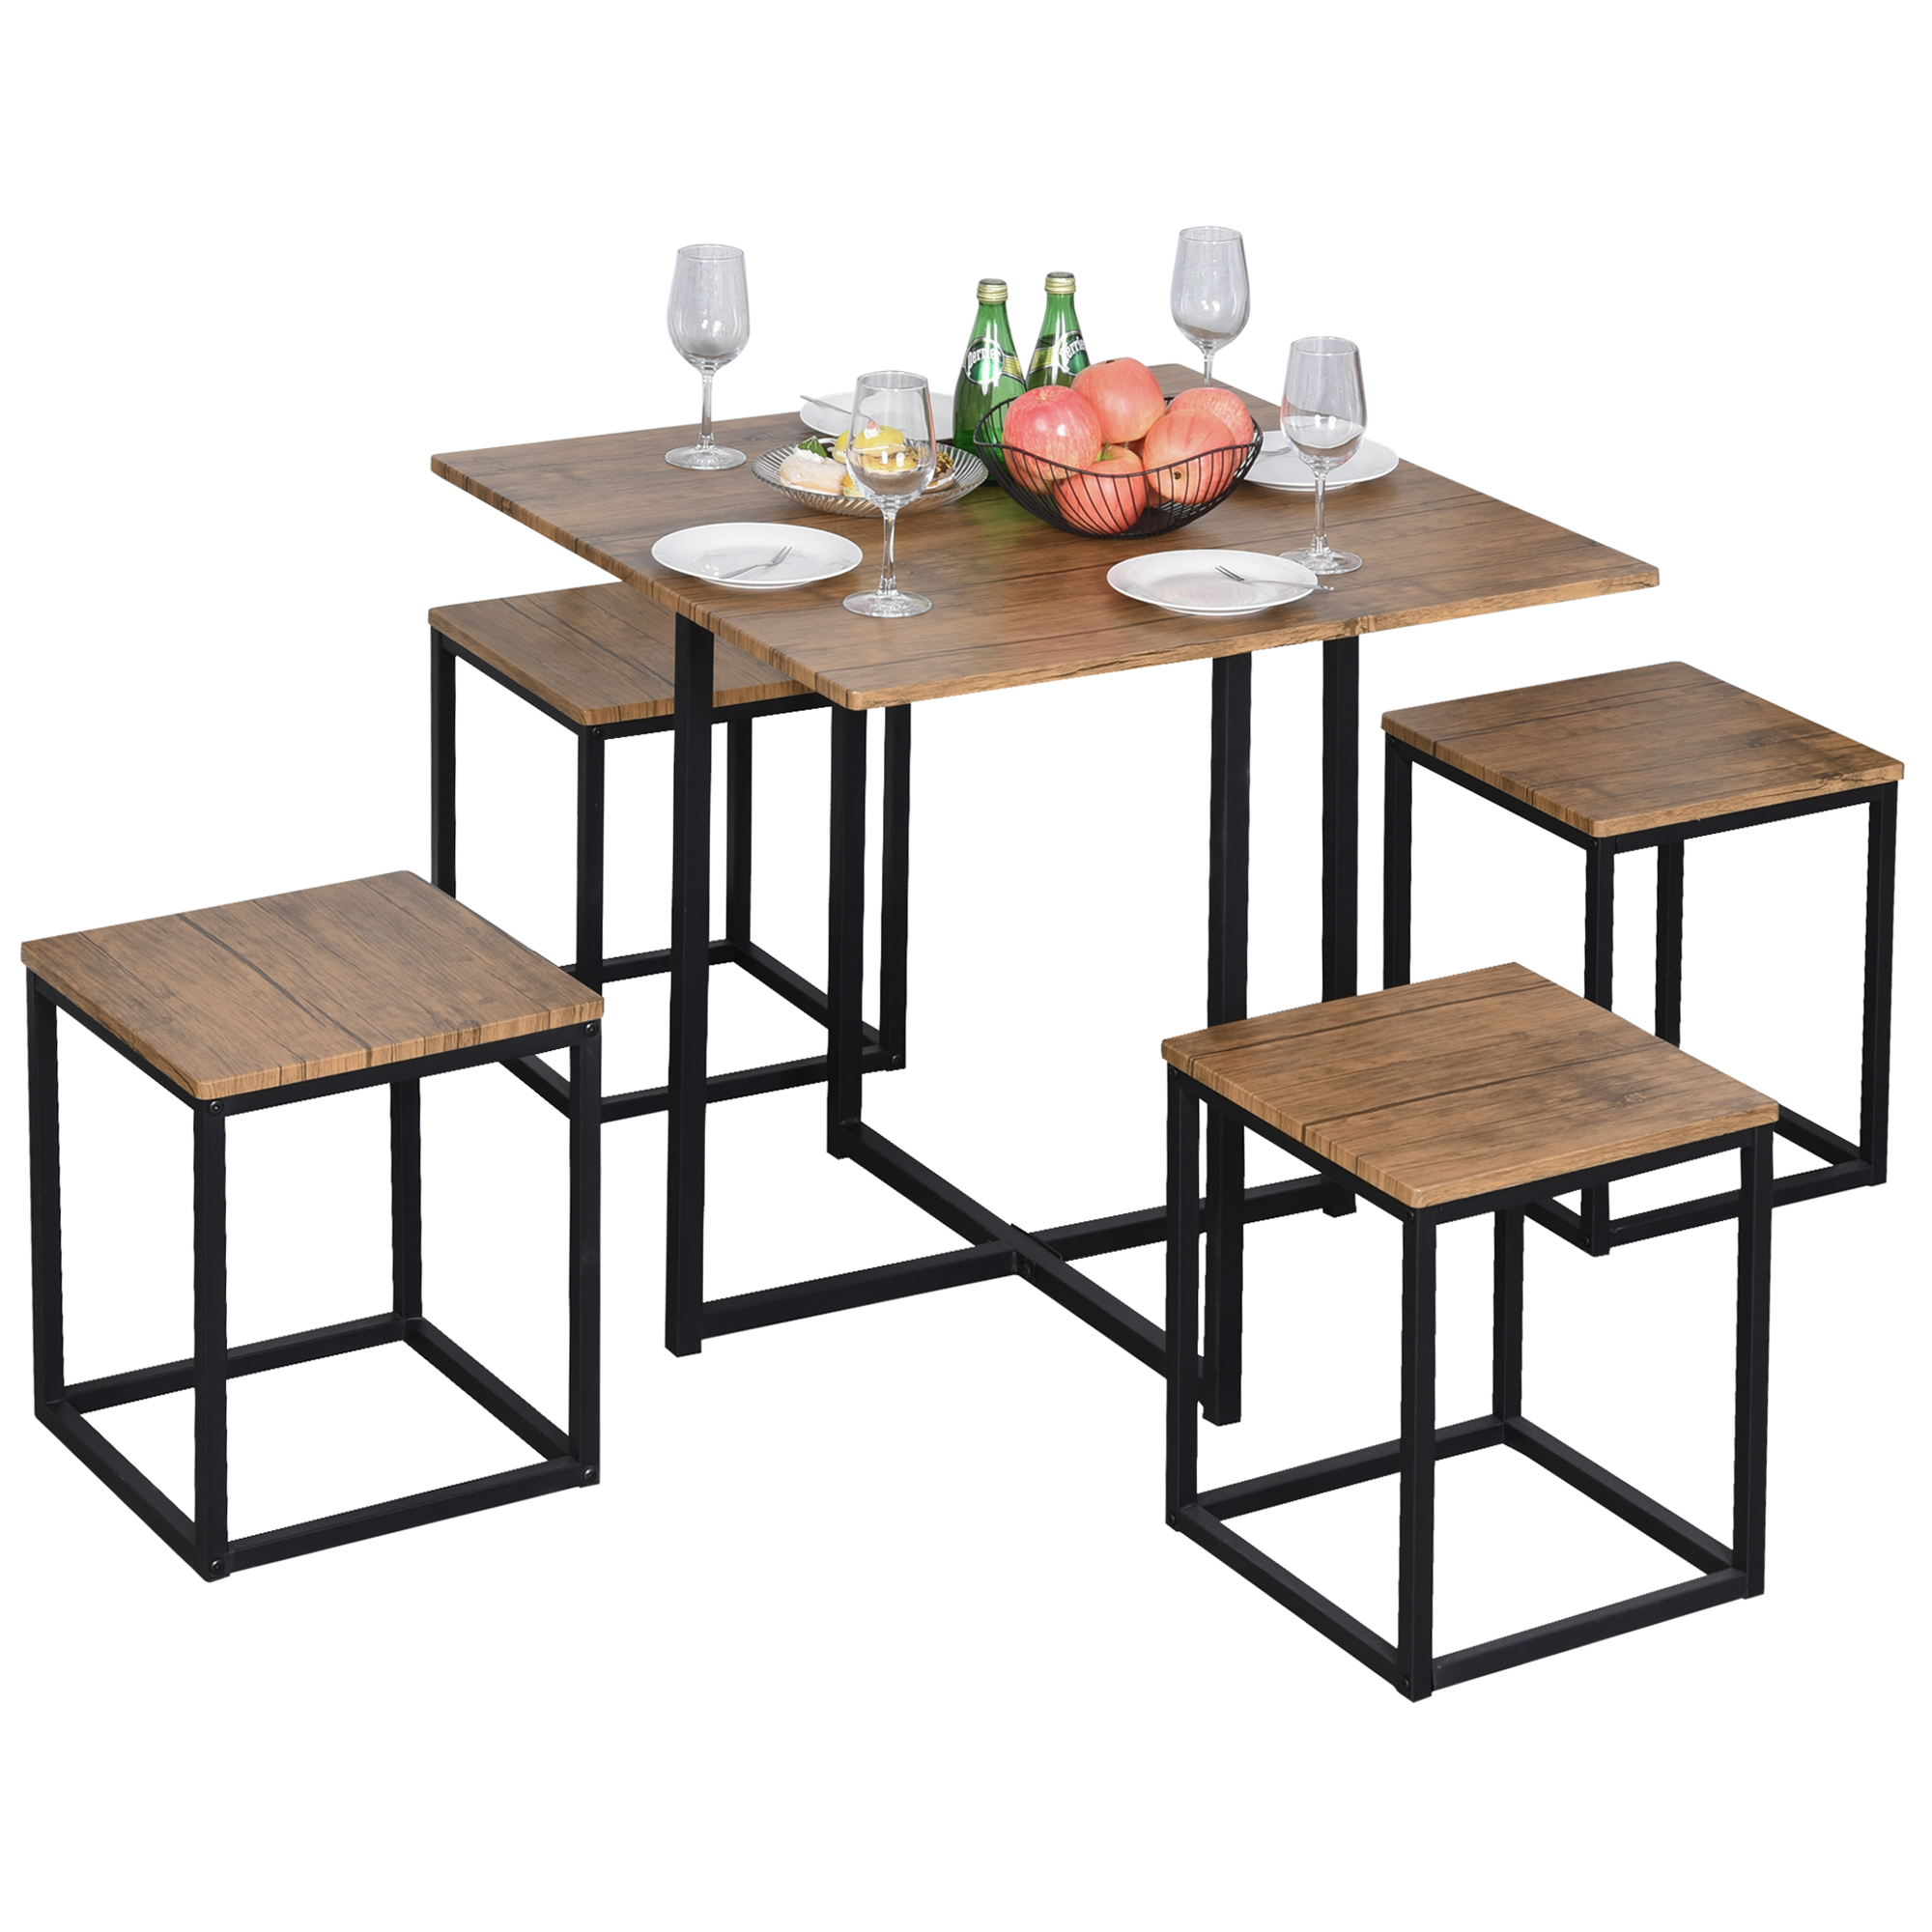 Homcom 5 Piece Dining Room Table Chair Set Square Board Steel Space Saving With Stools Walnut Wood Color 5pcs Dining Sets Aosom